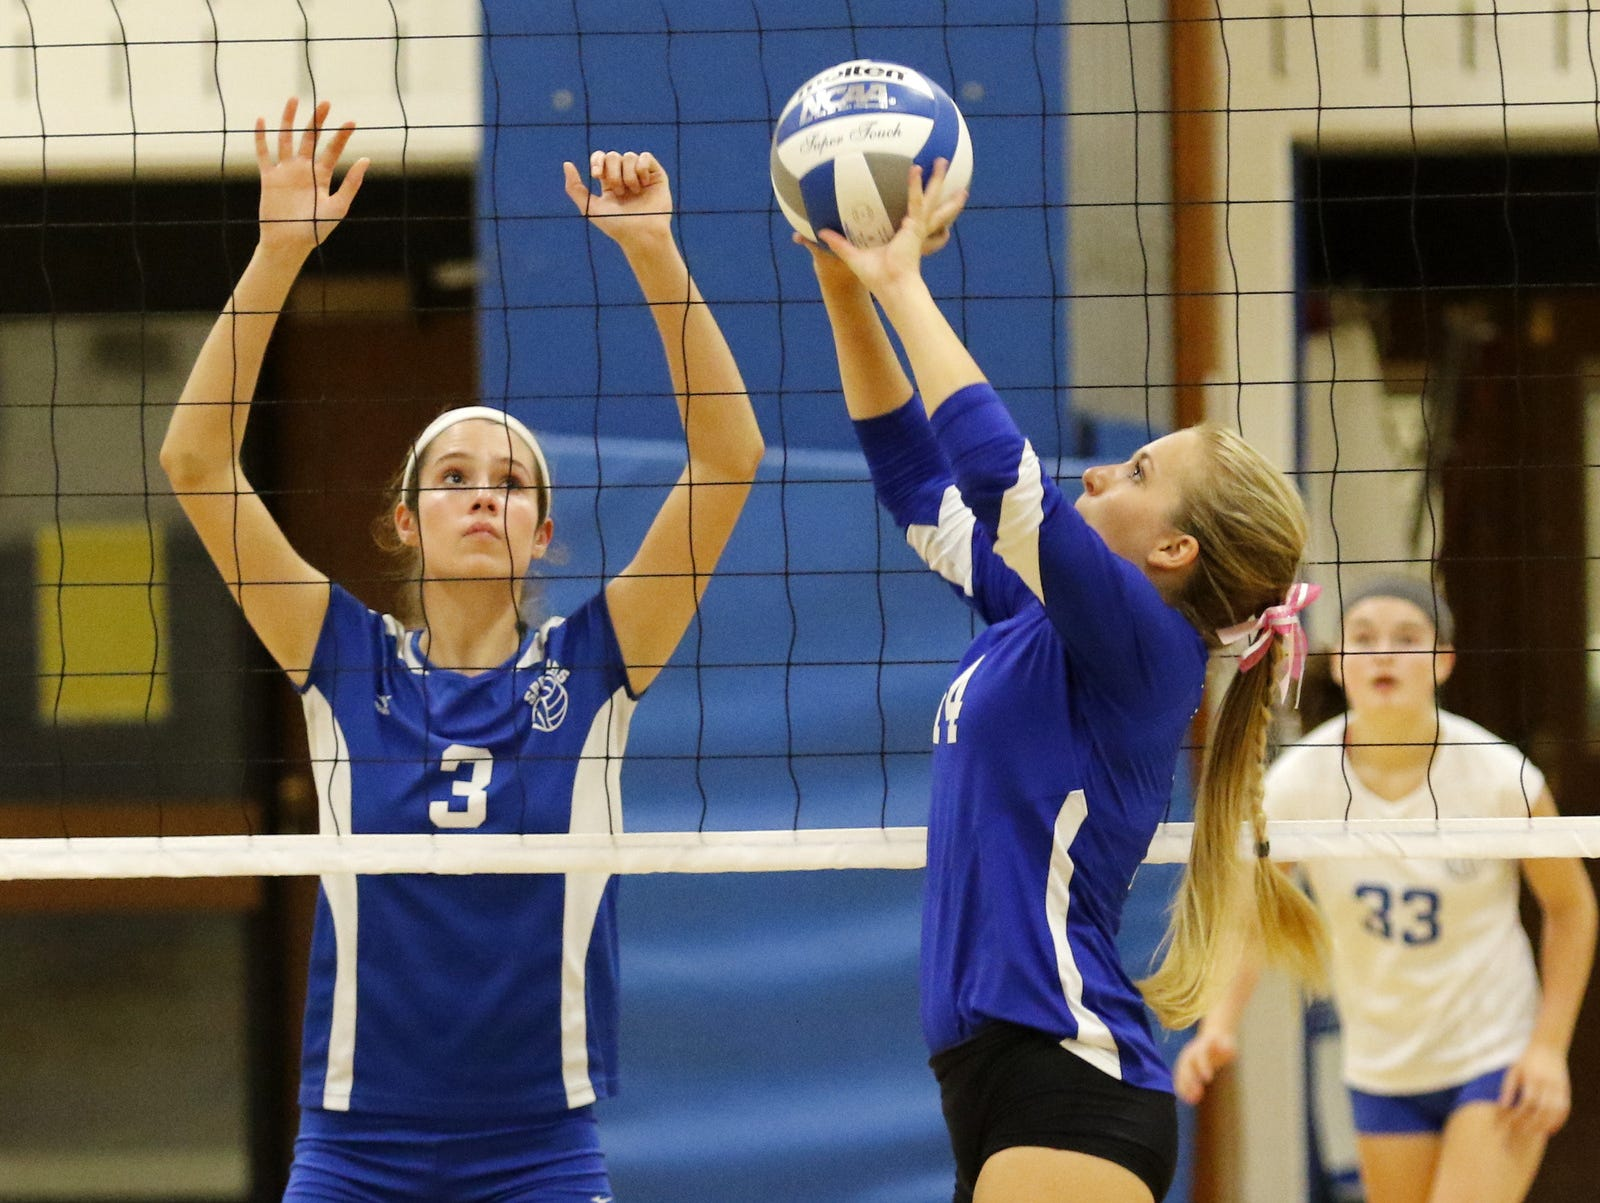 Horseheads plays against Maine-Endwell earlier this season. The Blue Raiders will try for their third straight Section 4 Class A volleyball title Thursday against Vestal at Elmira High School.